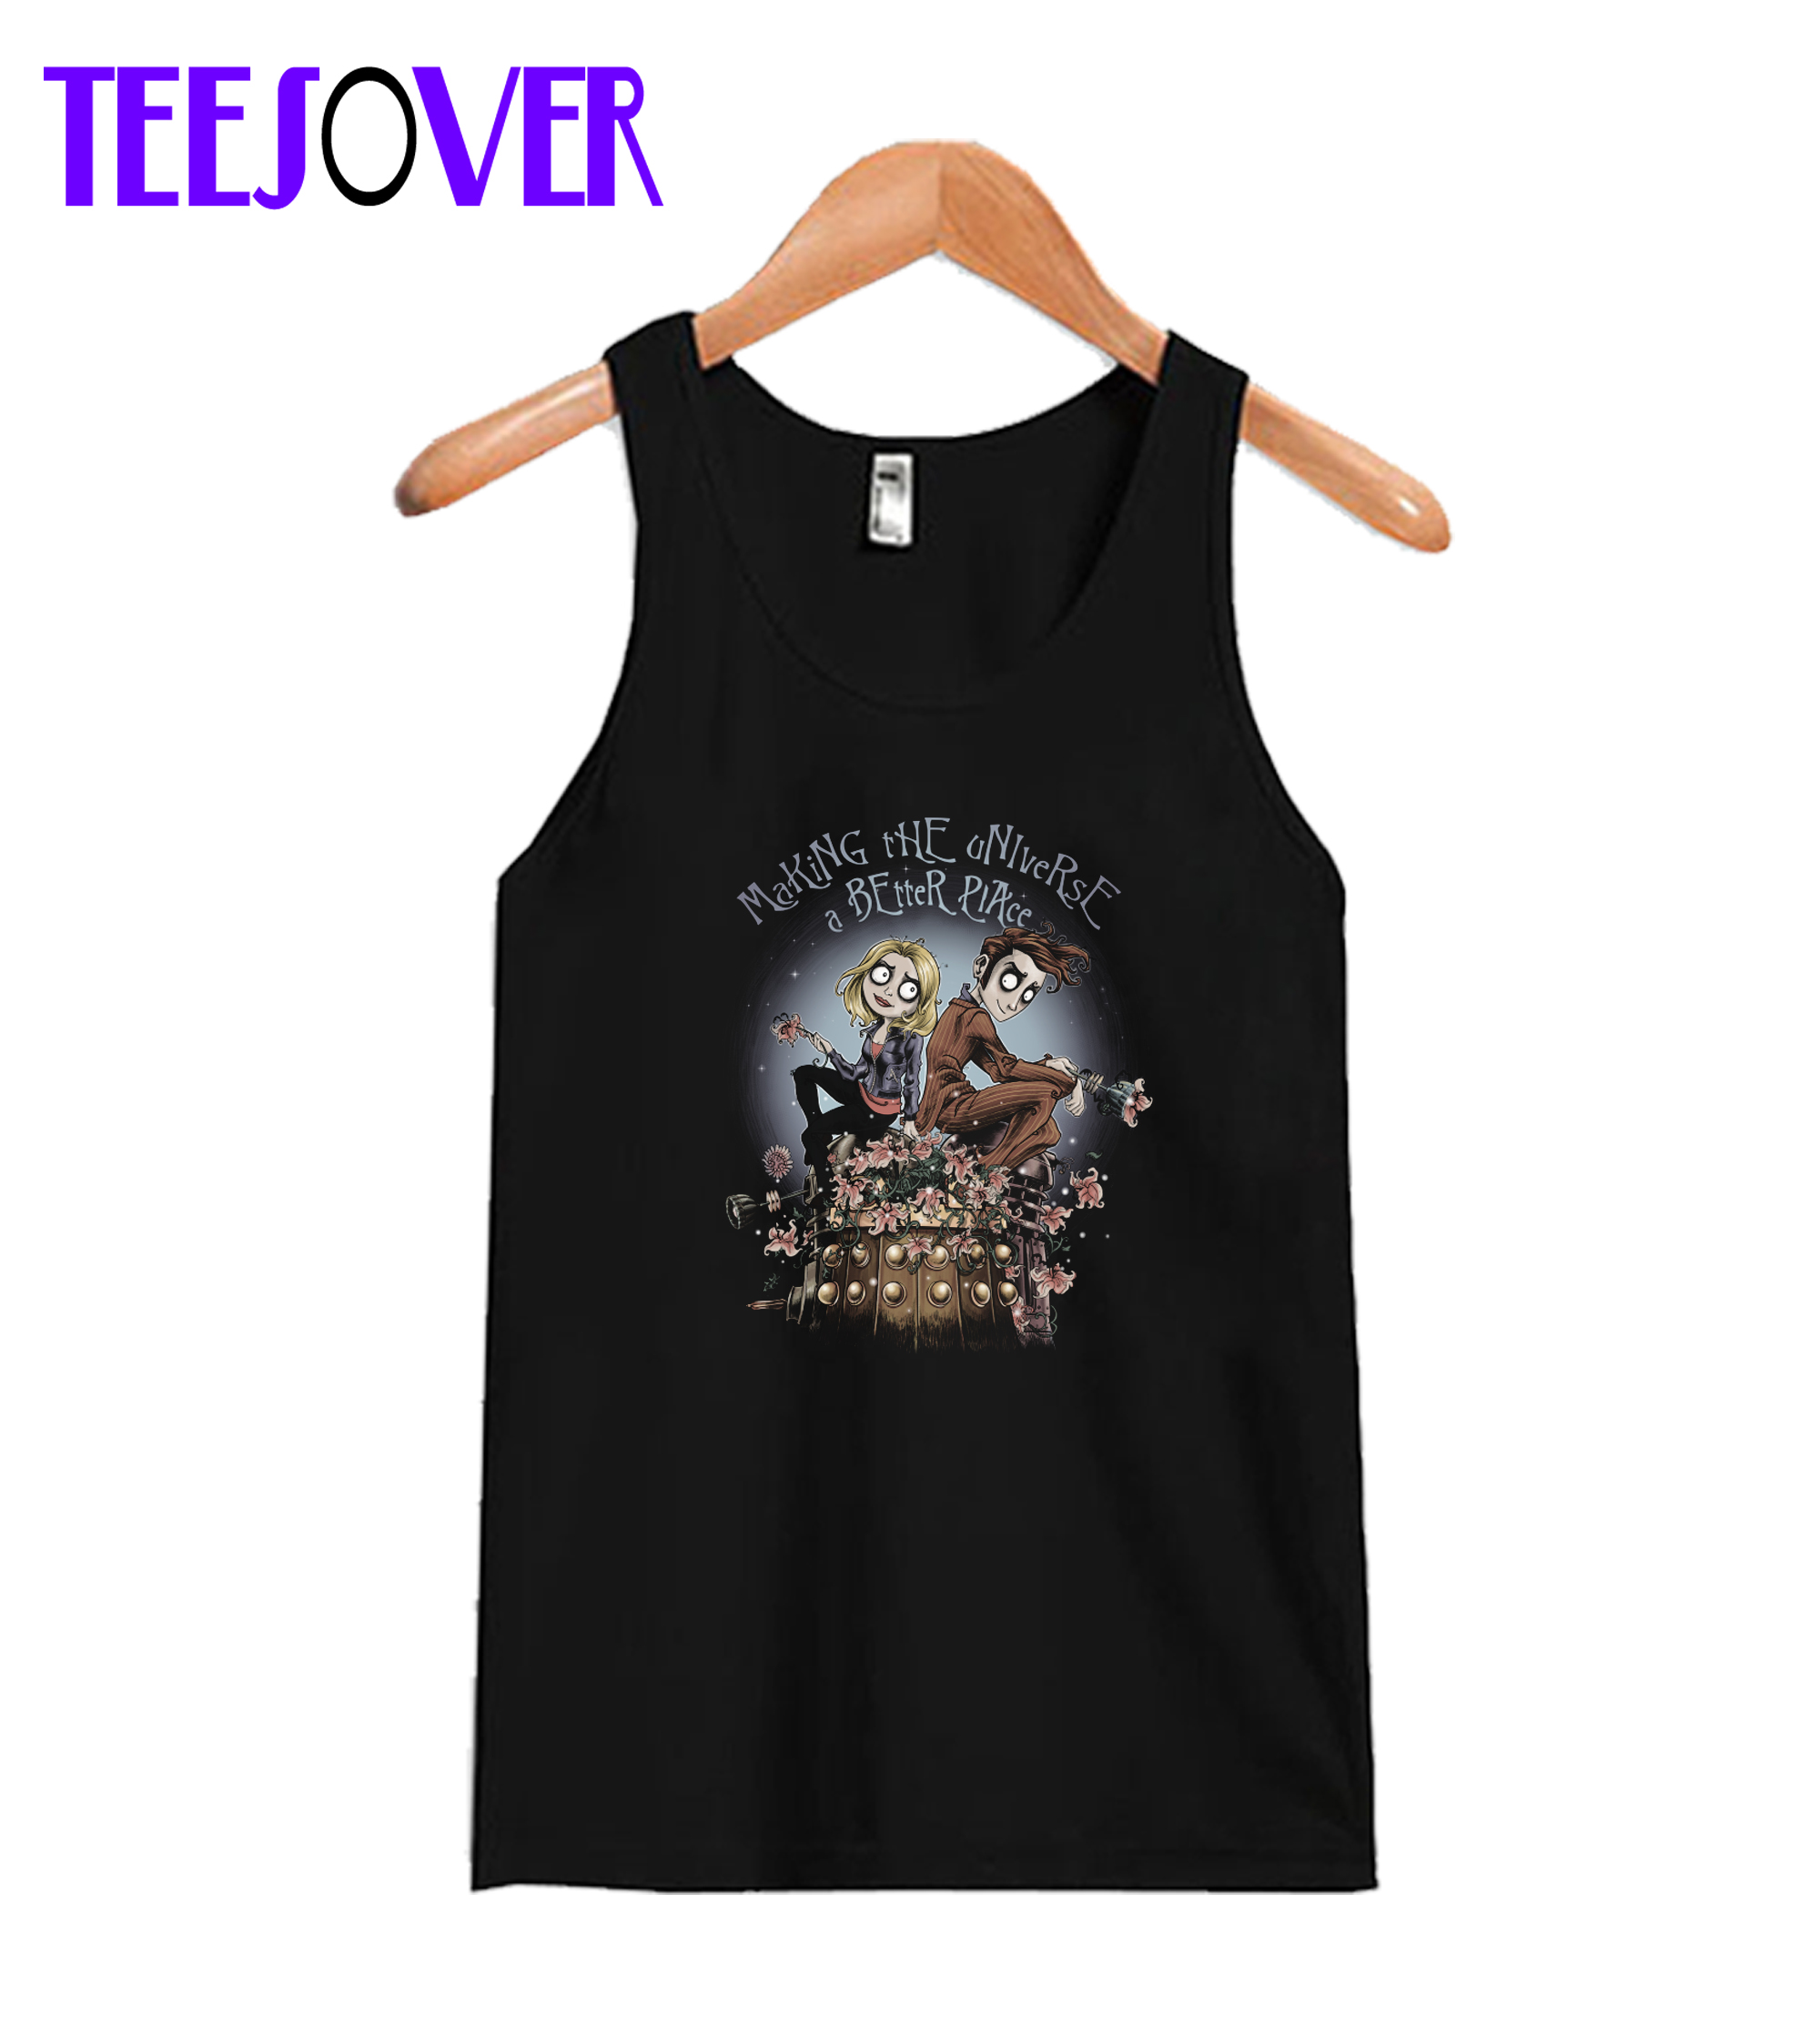 A Better Place Tank Top